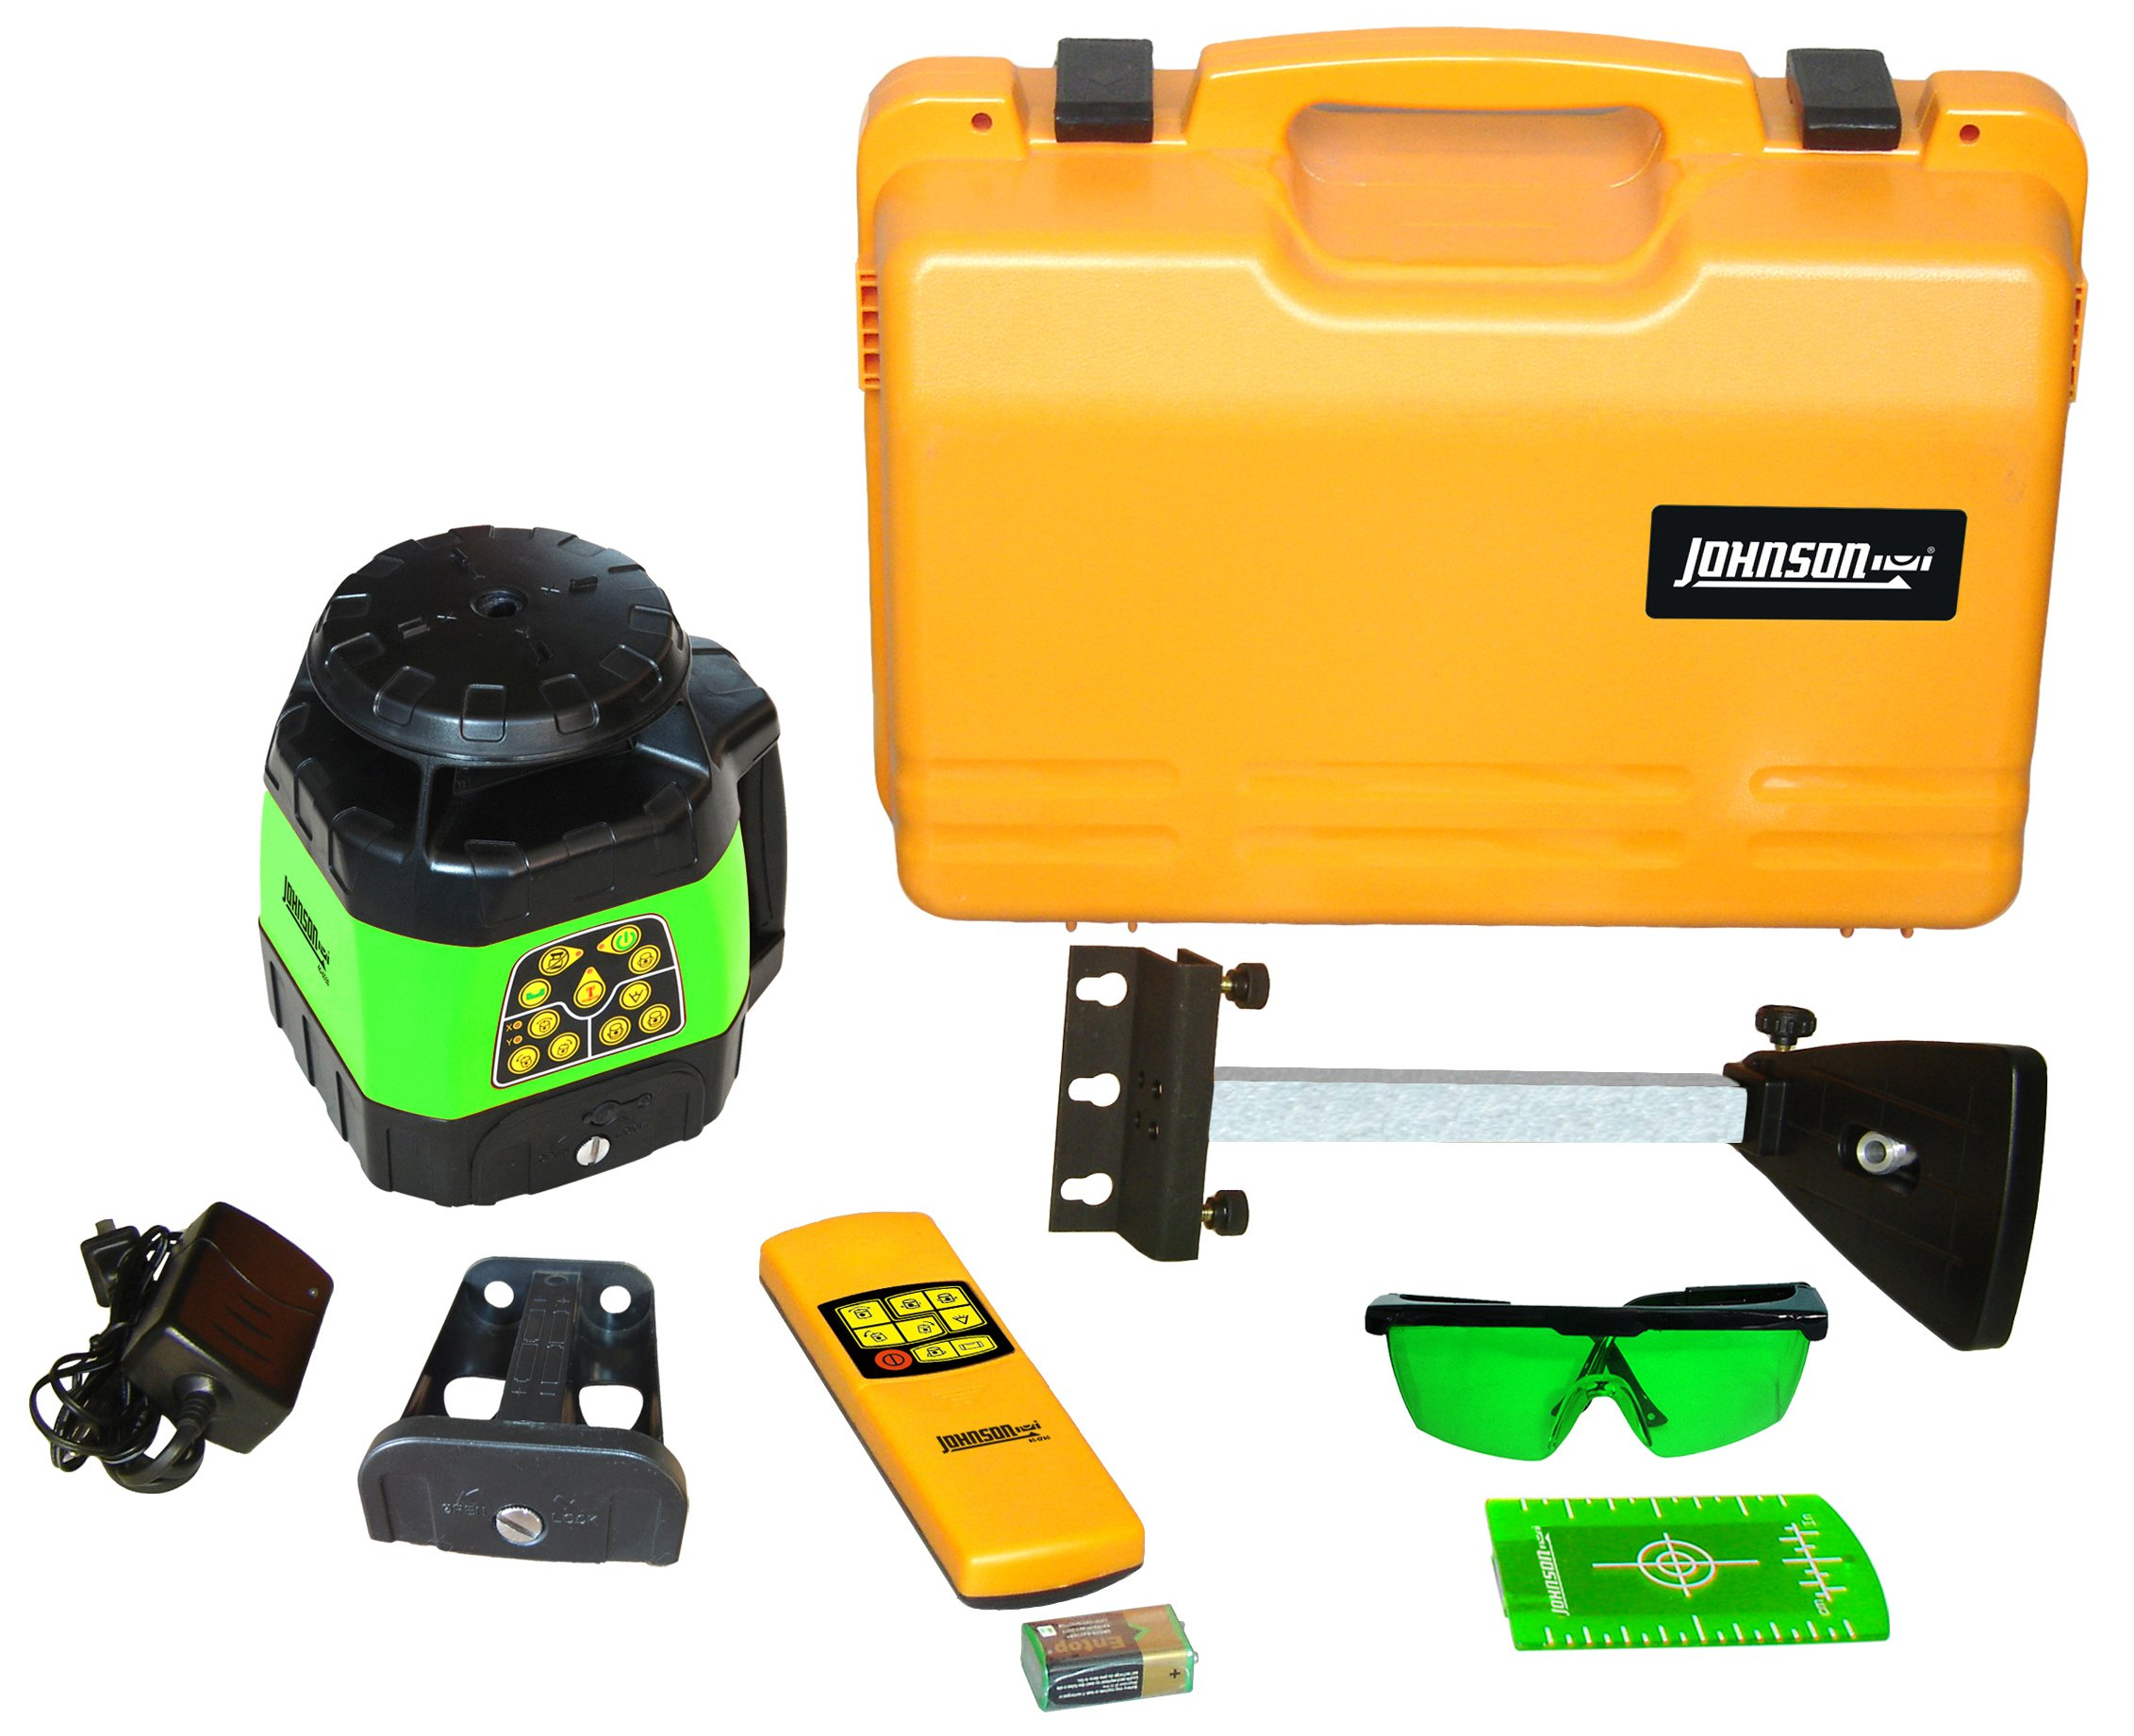 Johnson Level and Tool 40-6544 Electronic Self-Leveling Horizontal and Vertical Rotary Laser Kit with Green Brite Technology